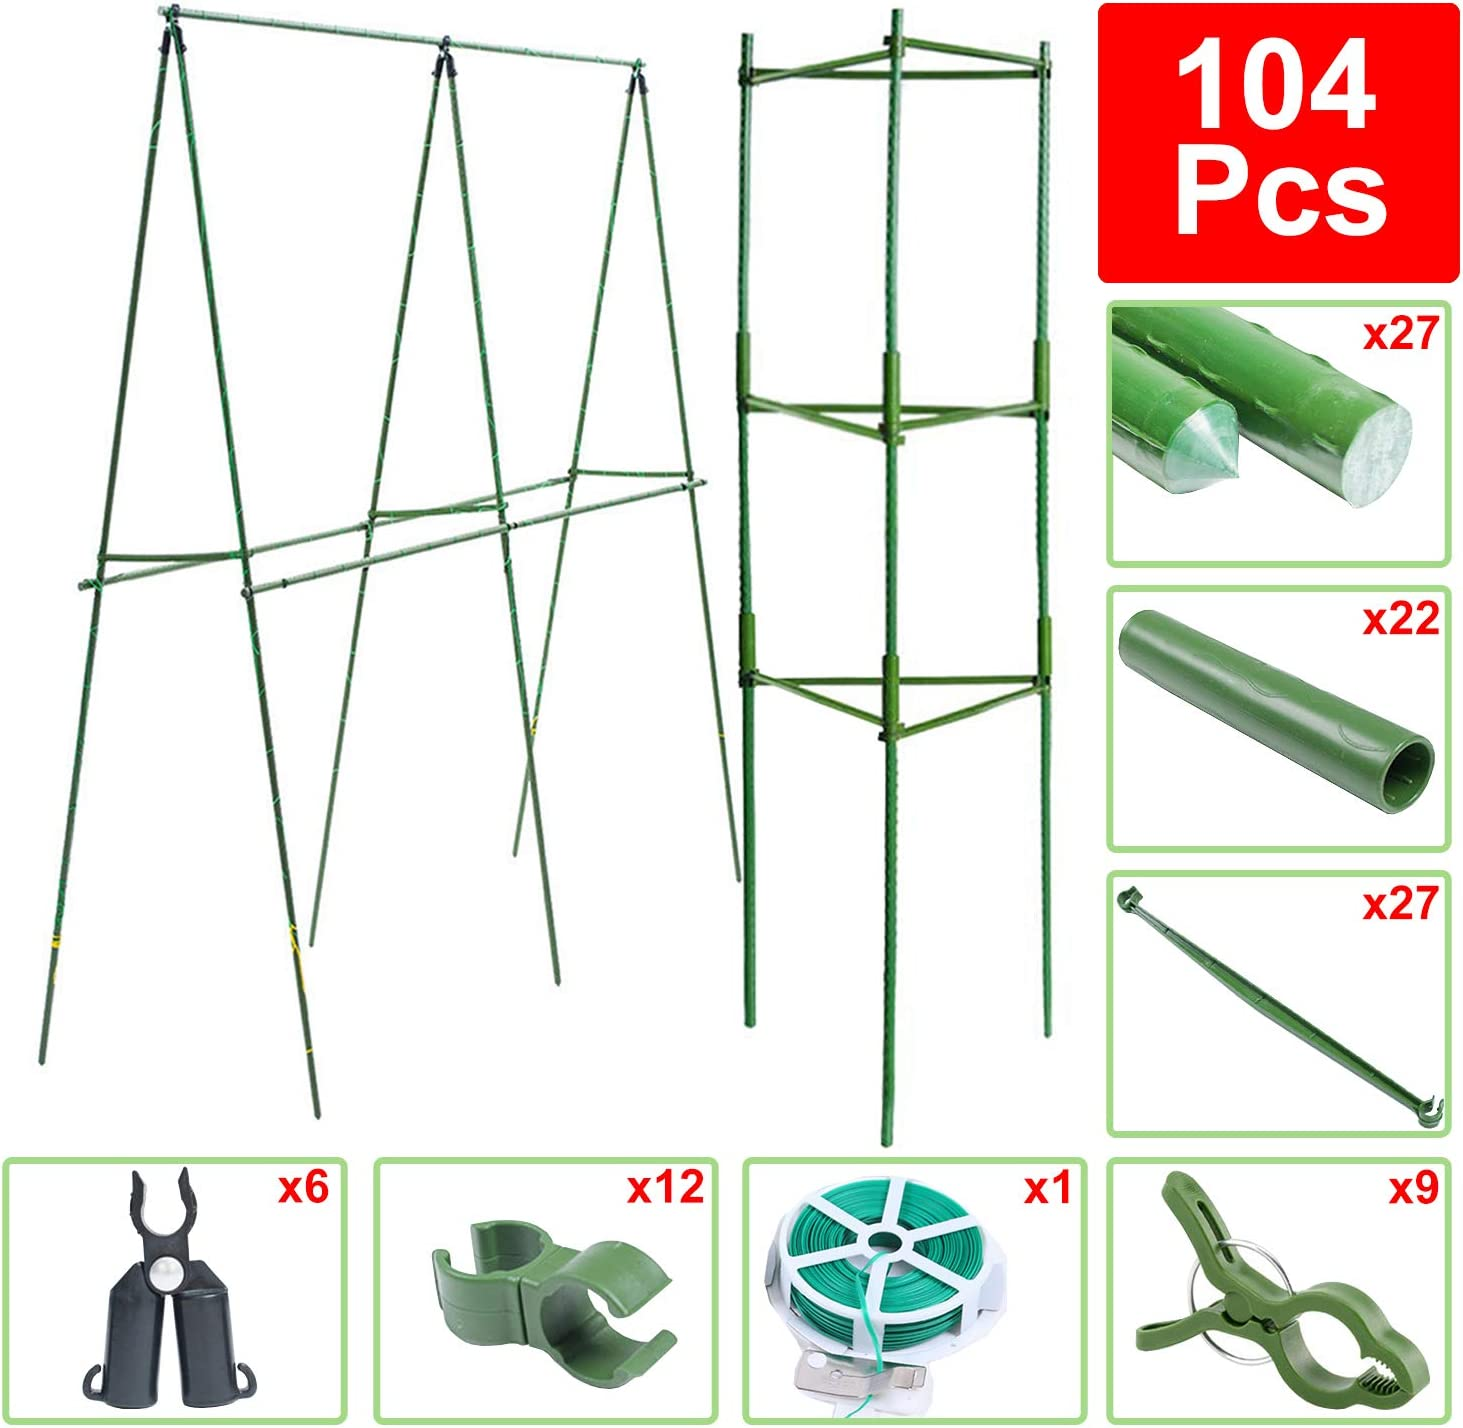 BLIKA 104 Pcs DIY Plant Supports, Tomato Cages Assembled Garden Plant Stakes Vegetable Trellis for Vertical Climbing Plants, 27 Pcs Coated Plant Stakes with 9 Pcs Clips, Twist Tie and Connectors